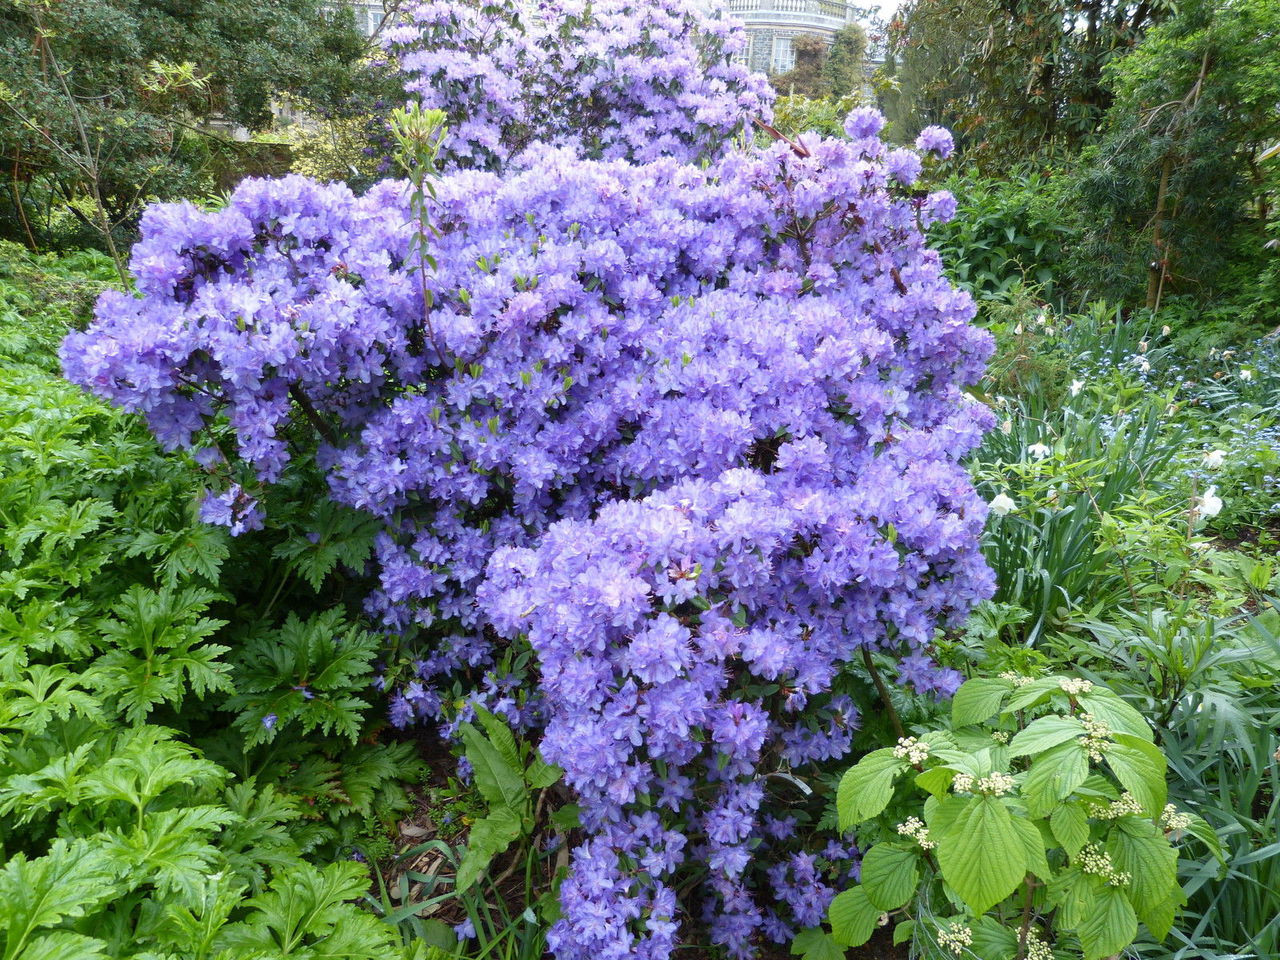 3 Blue Diamond Rhododendron 15 20cm In 2 Litre Pot With Violet